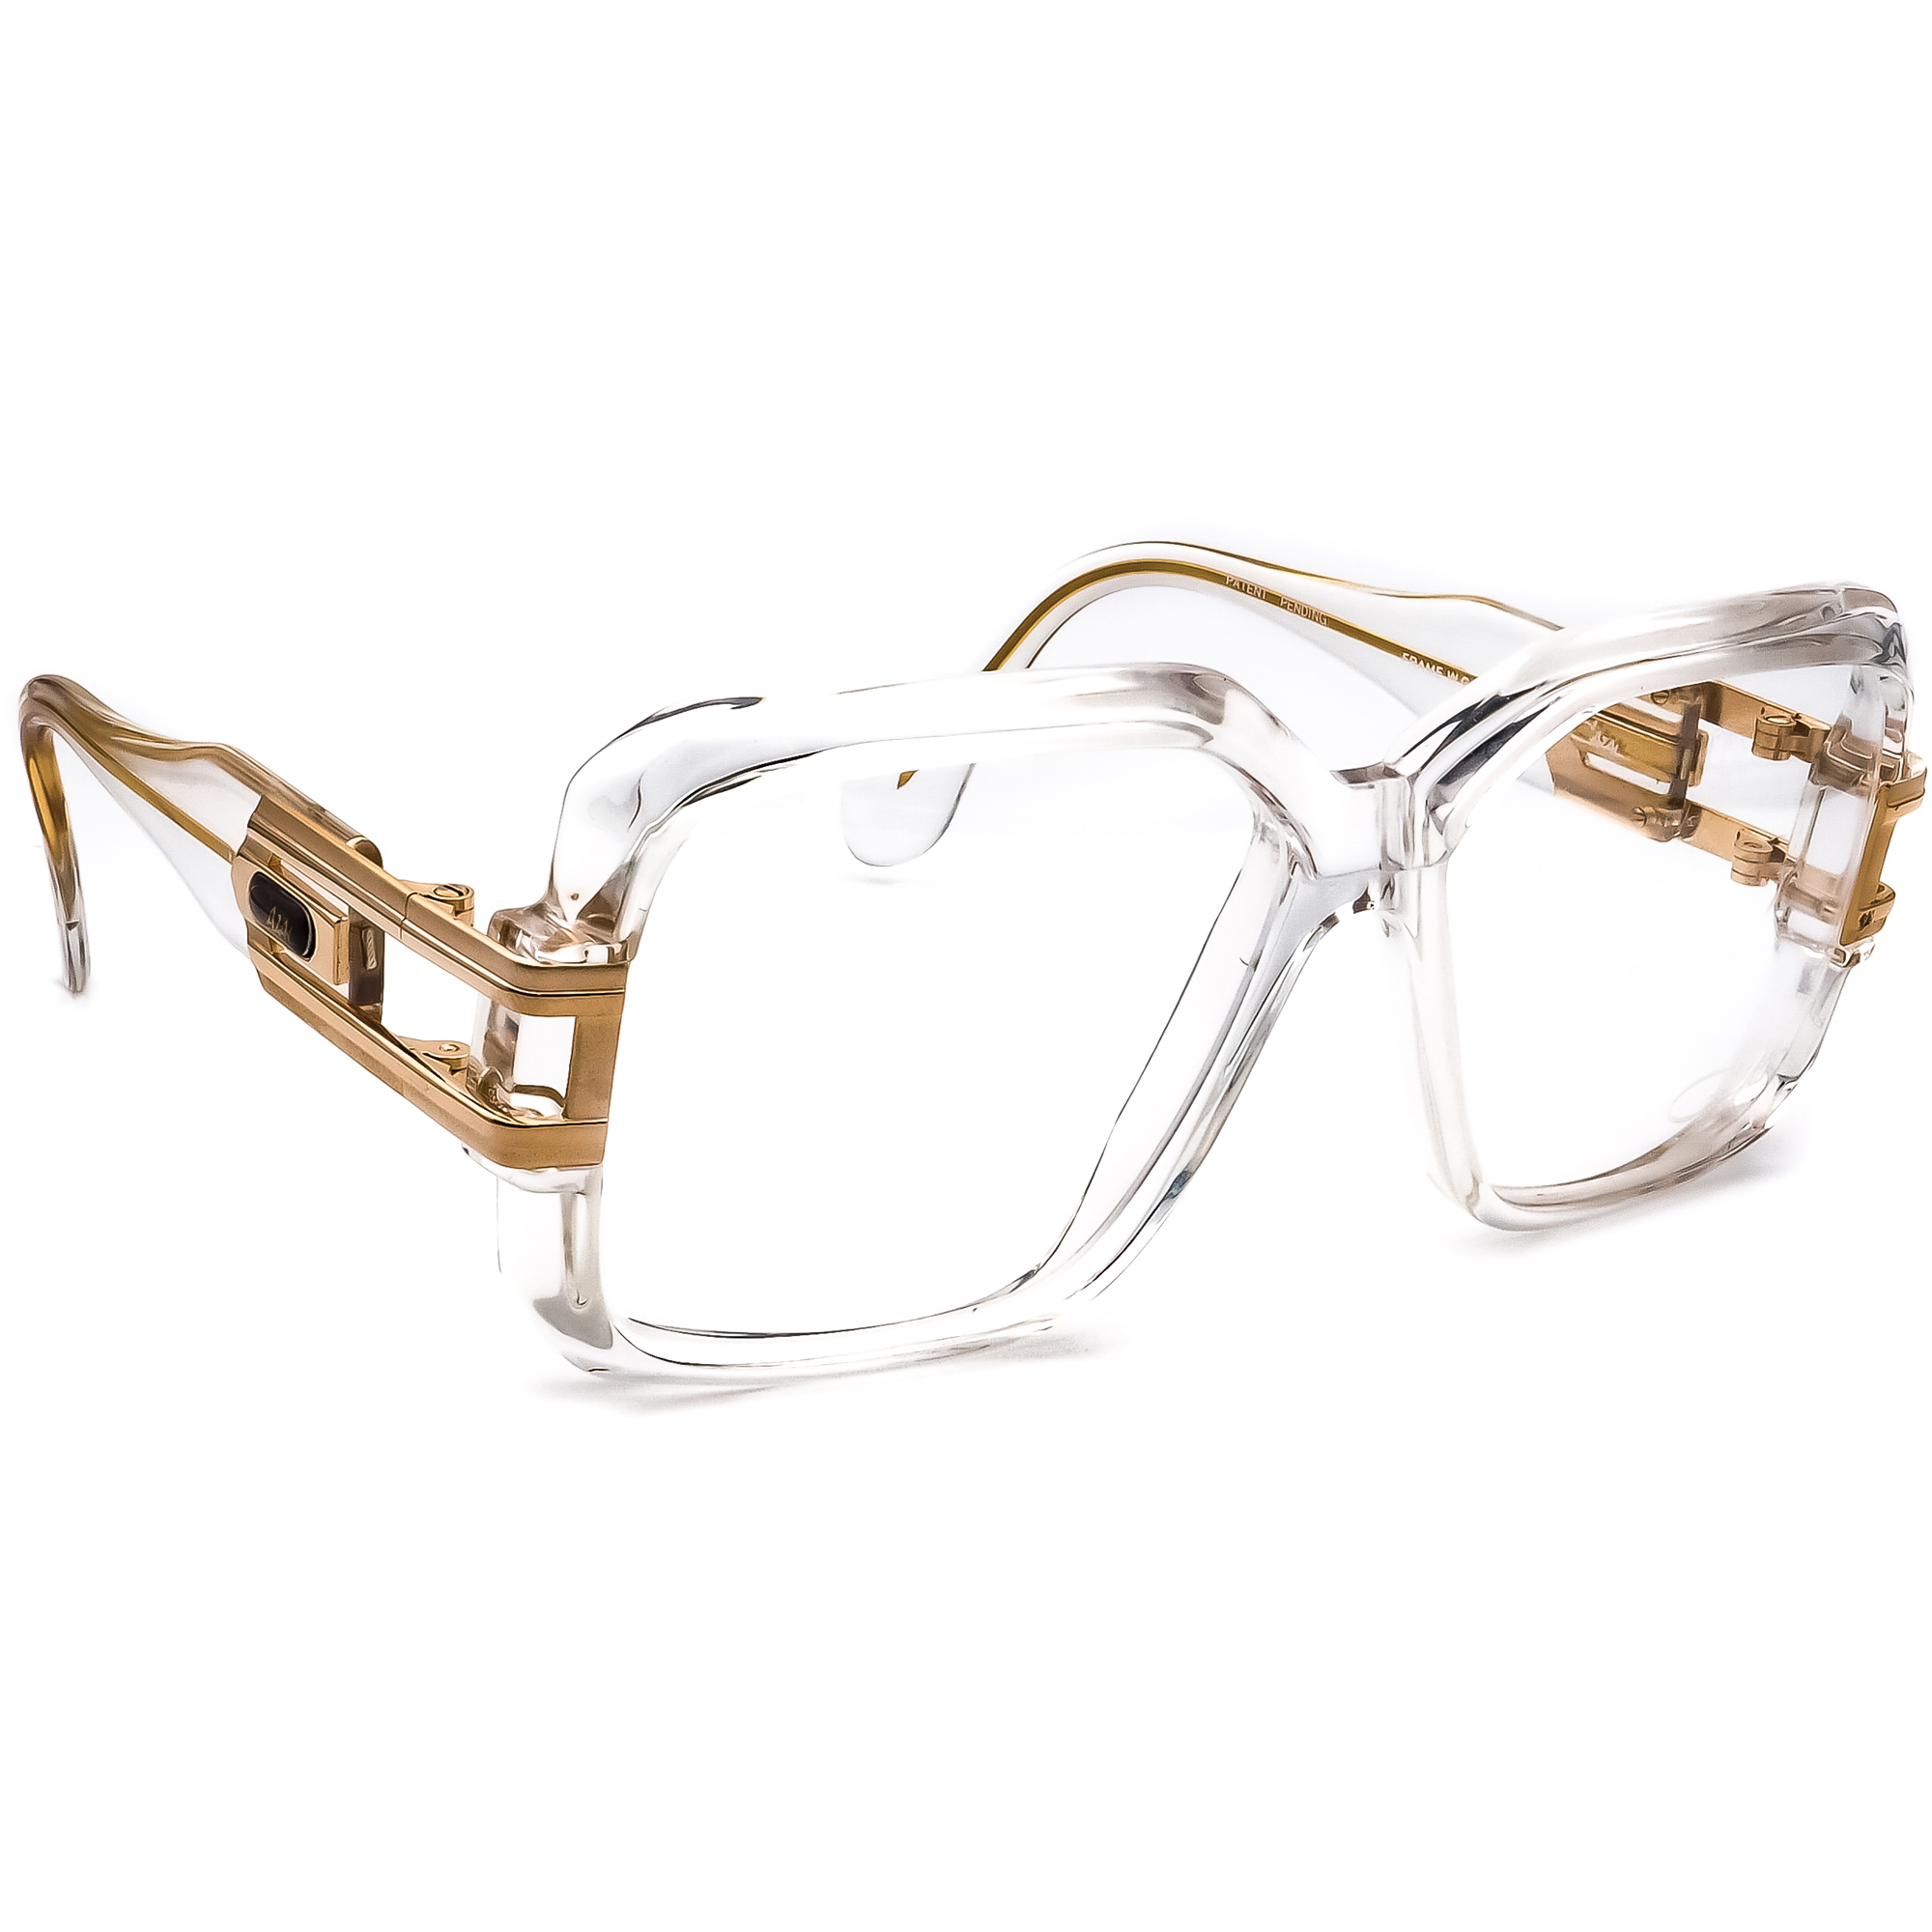 Cazal Eyeglasses MOD 623 COL 65/97 Clear/Gold Frame Germany 59[]16 140 Handmade